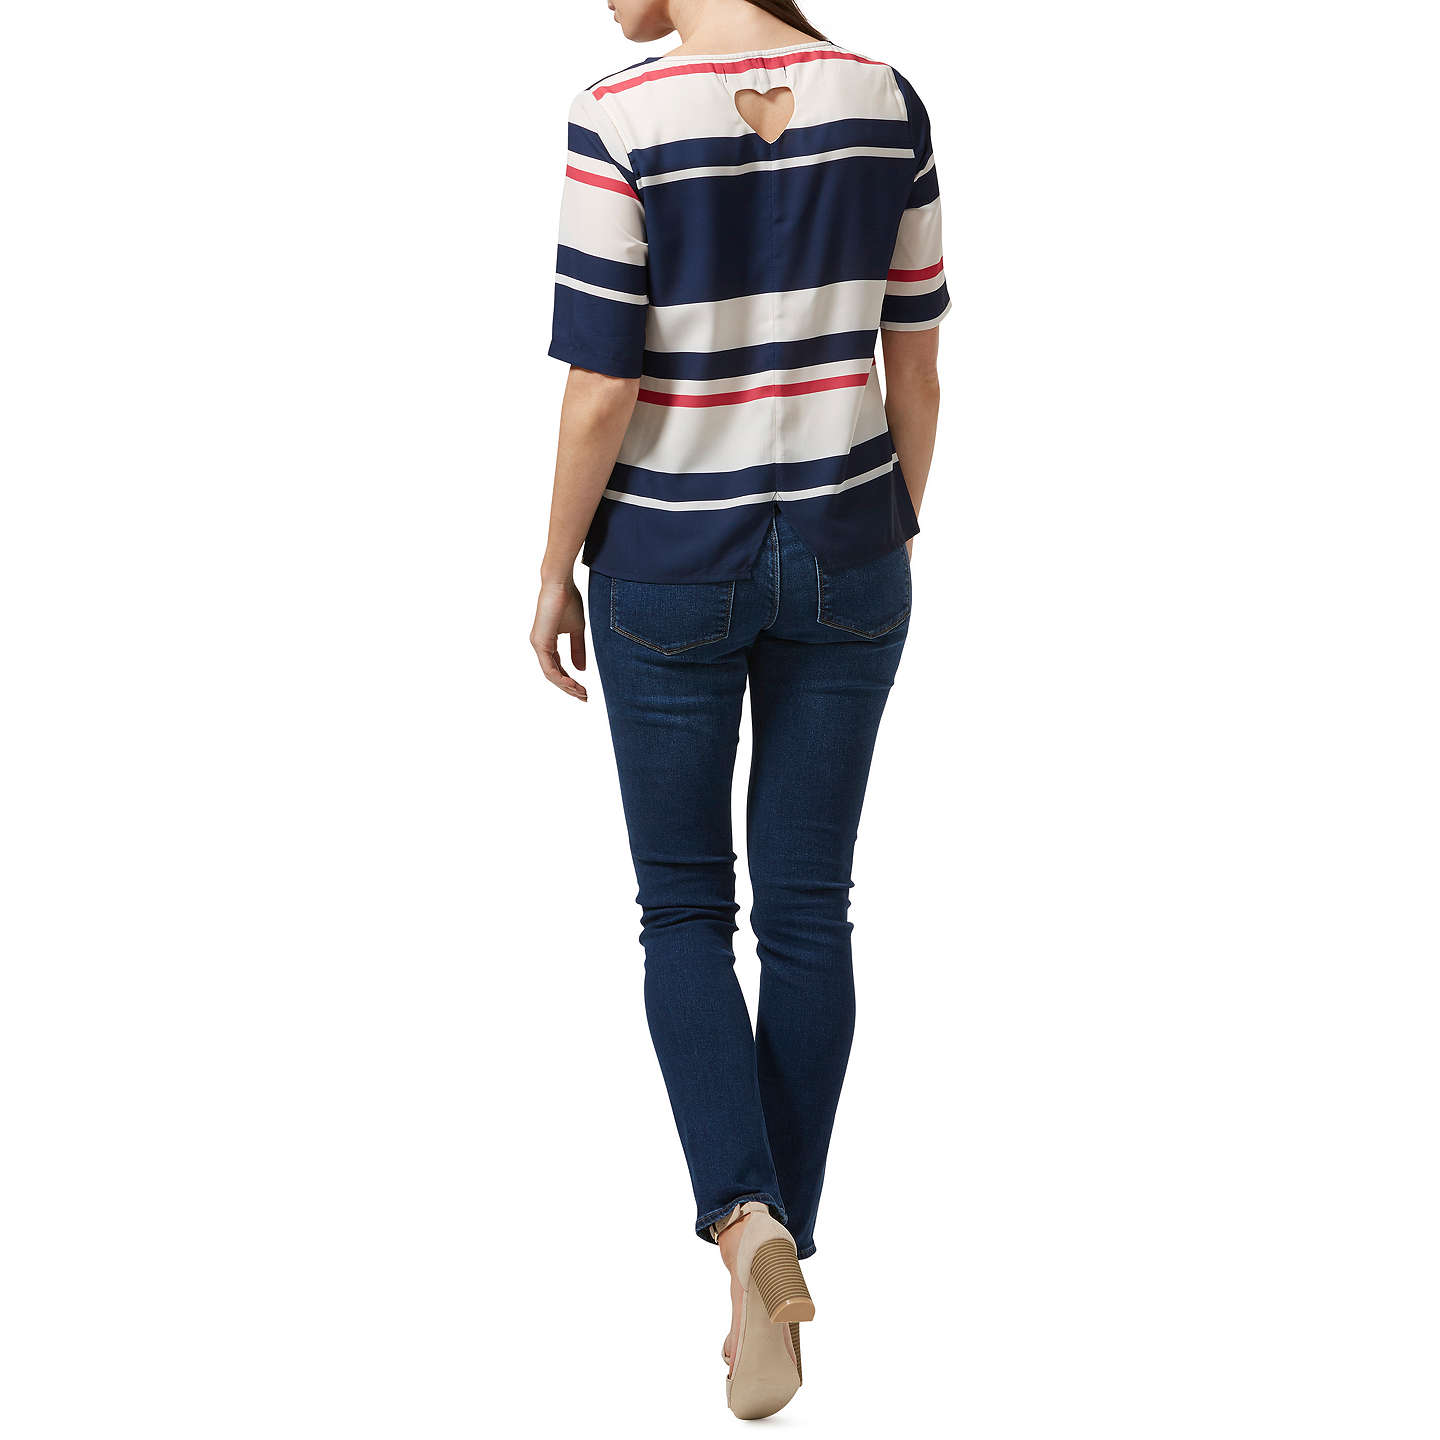 Sugarhill Brighton Honour Love Stripe Top, Cream/Navy